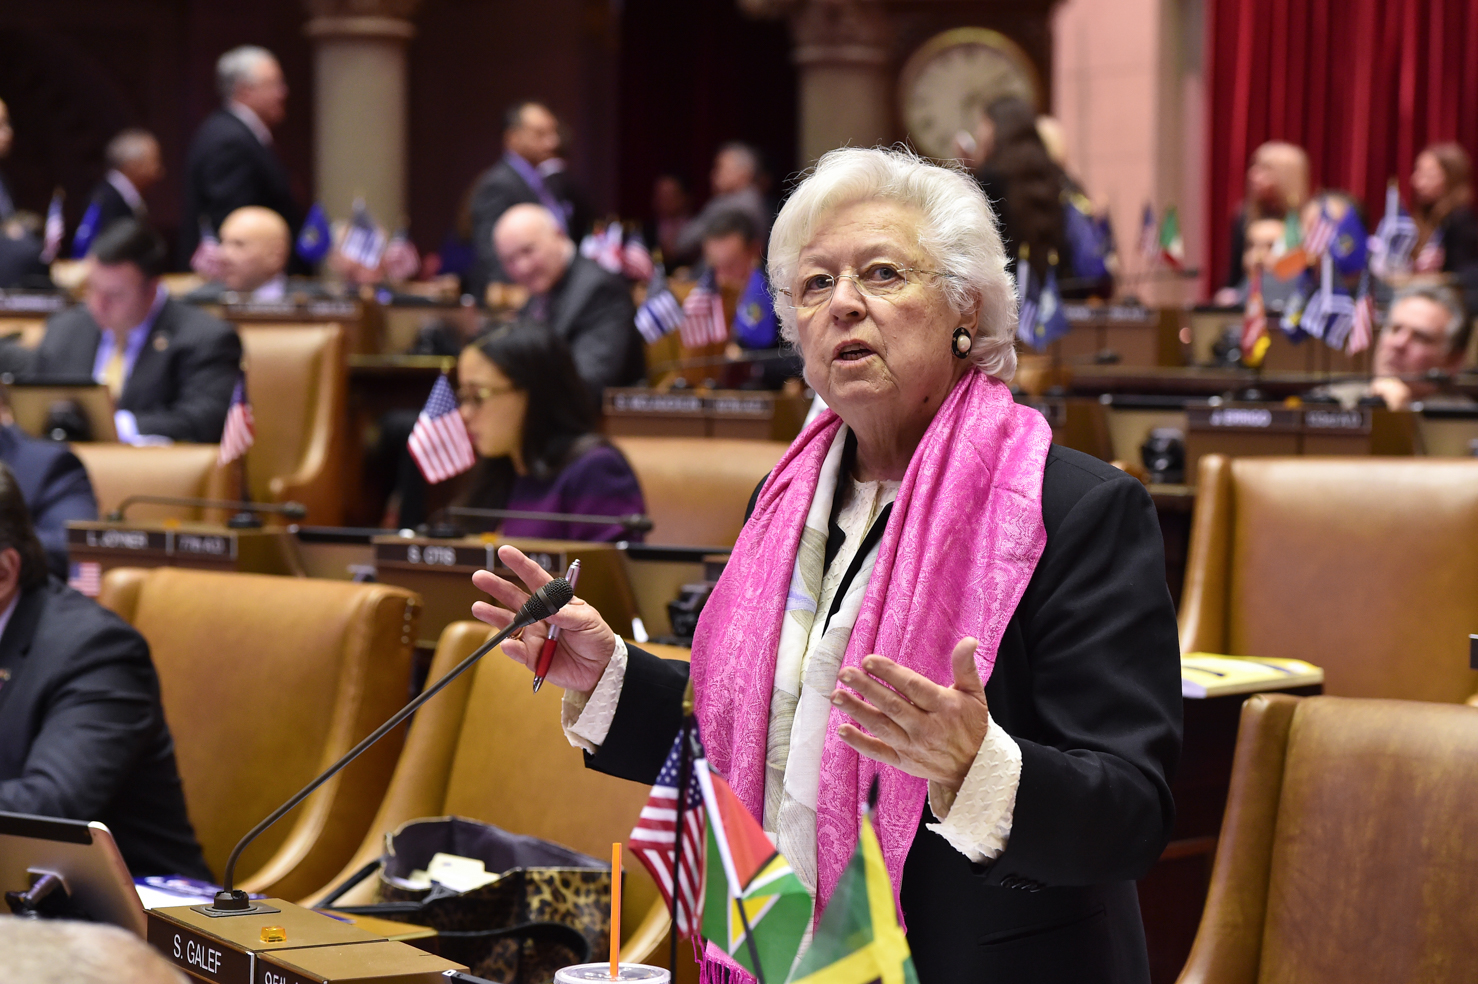 Sandy, pictured here on the New York State Assembly Floor, has passed many bills to benefit the people and municipalities she represents.